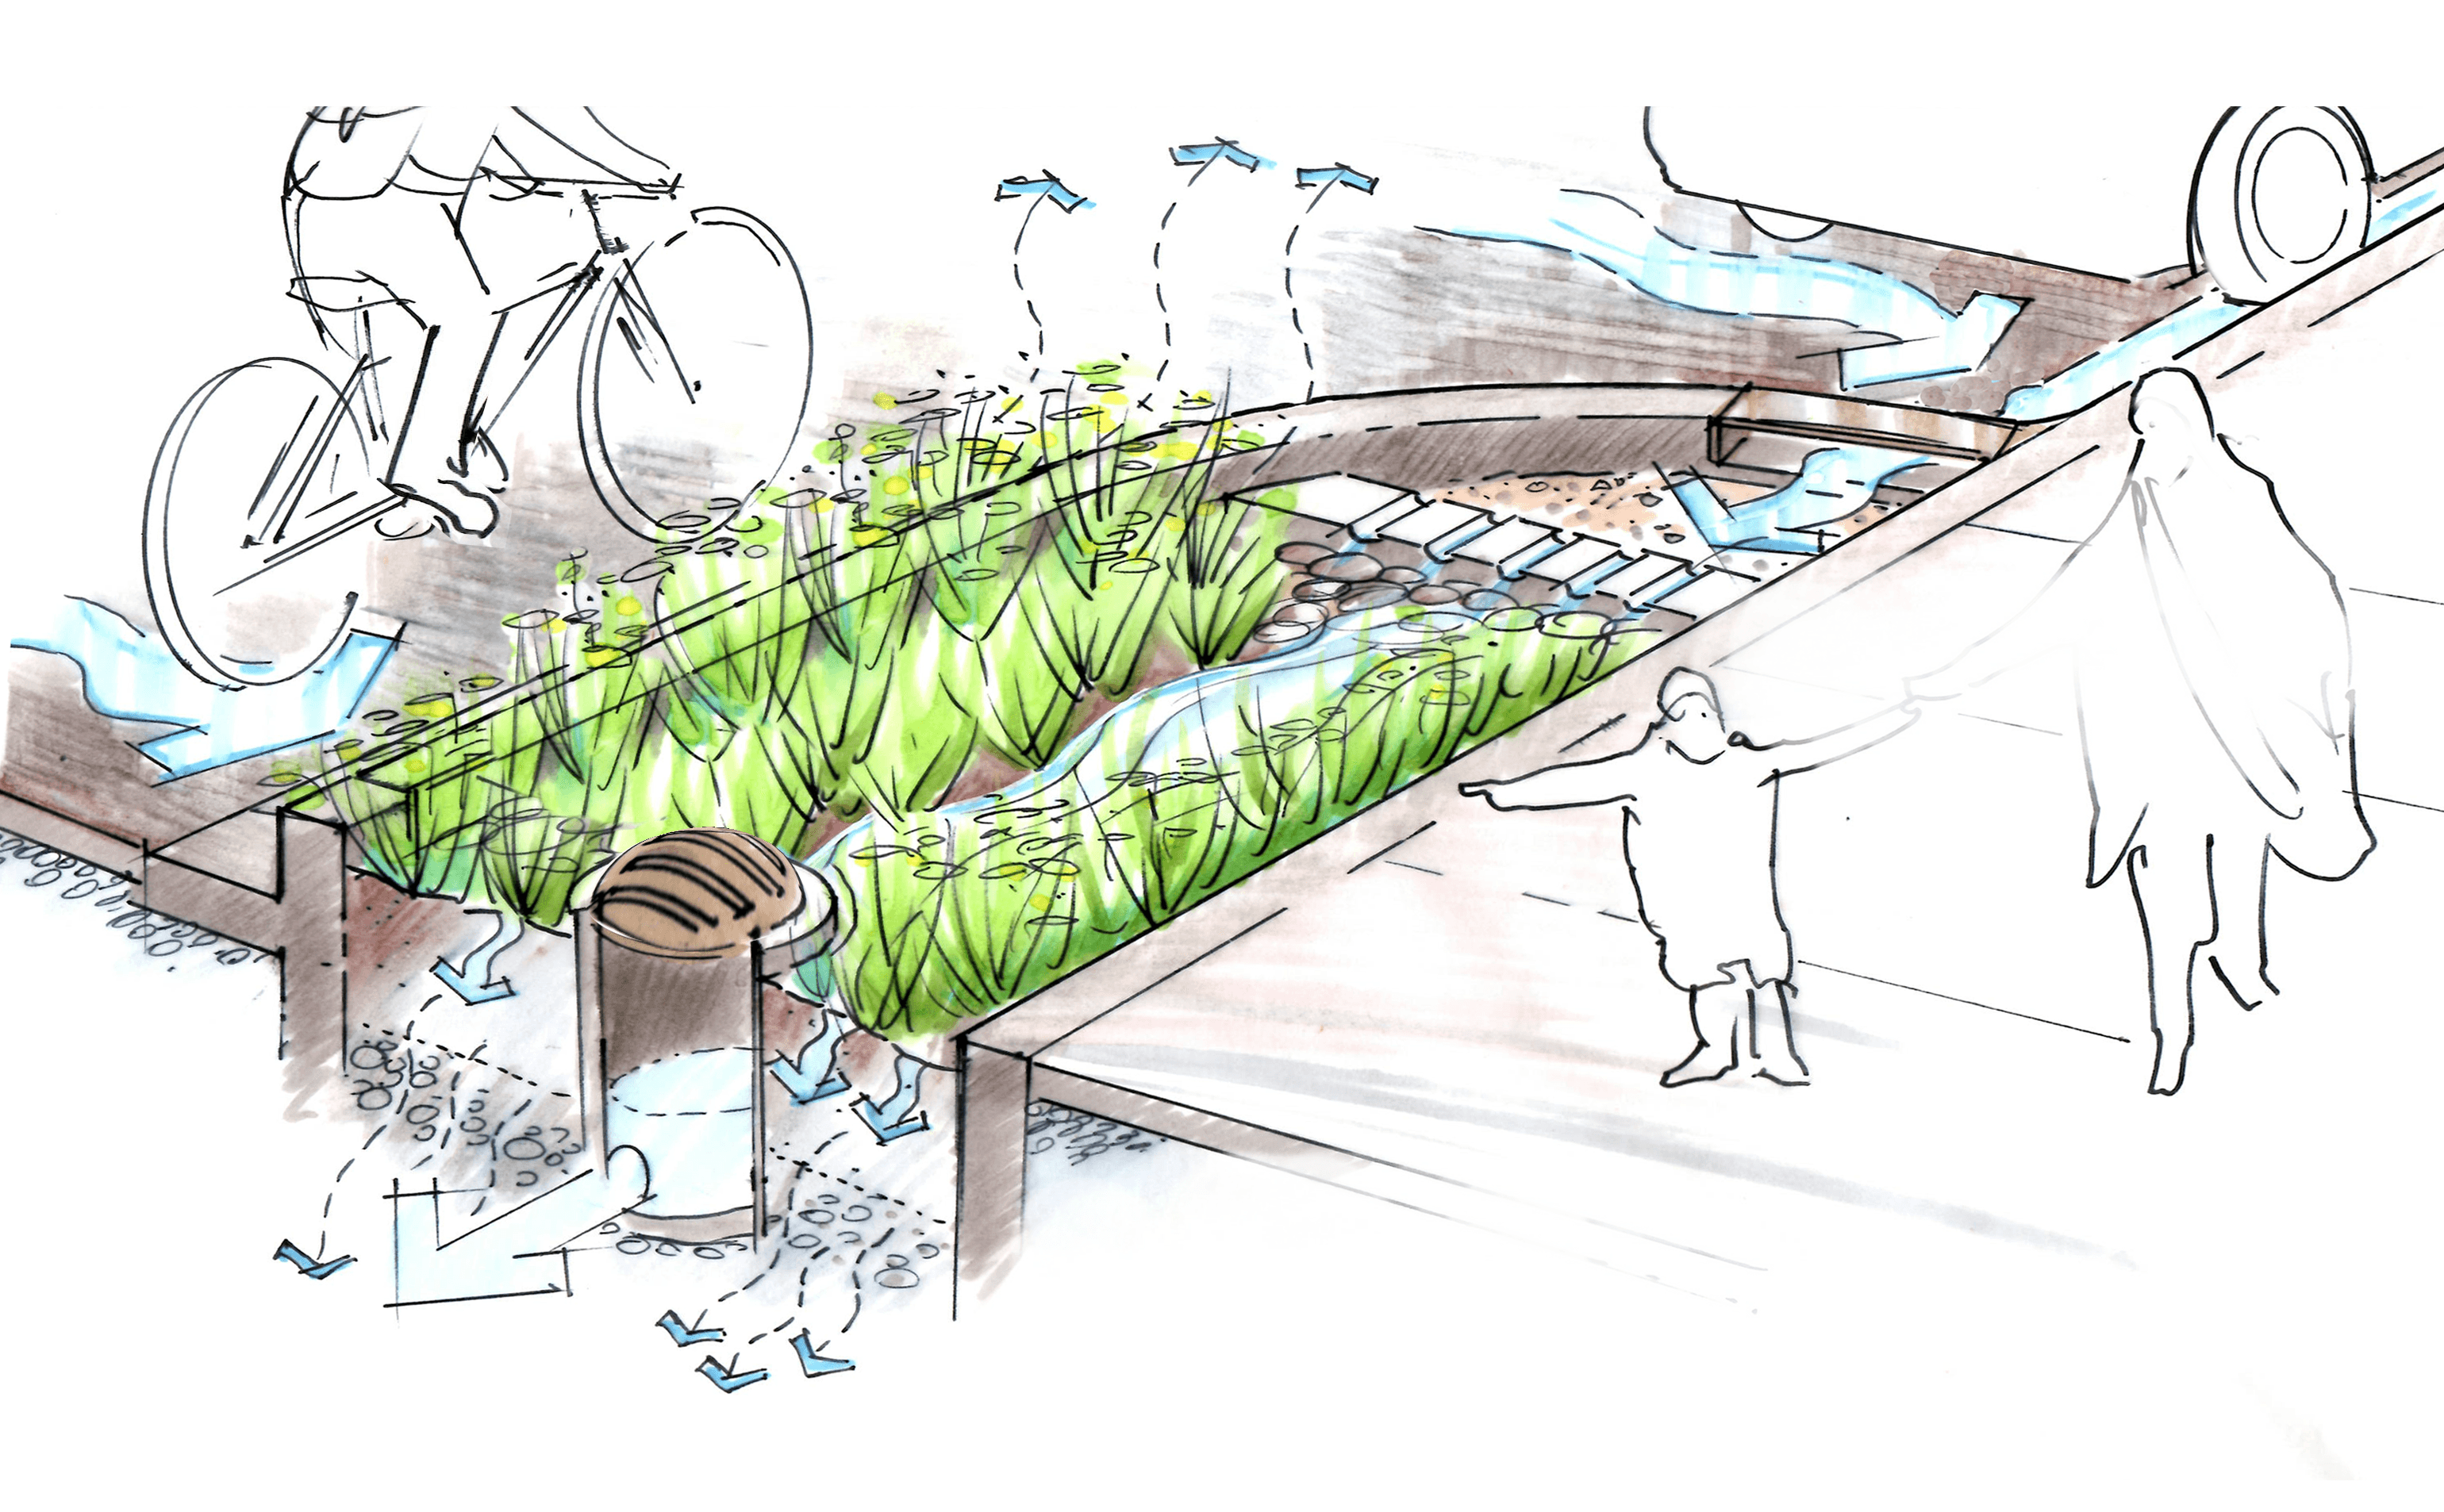 Drawing of a rain garden